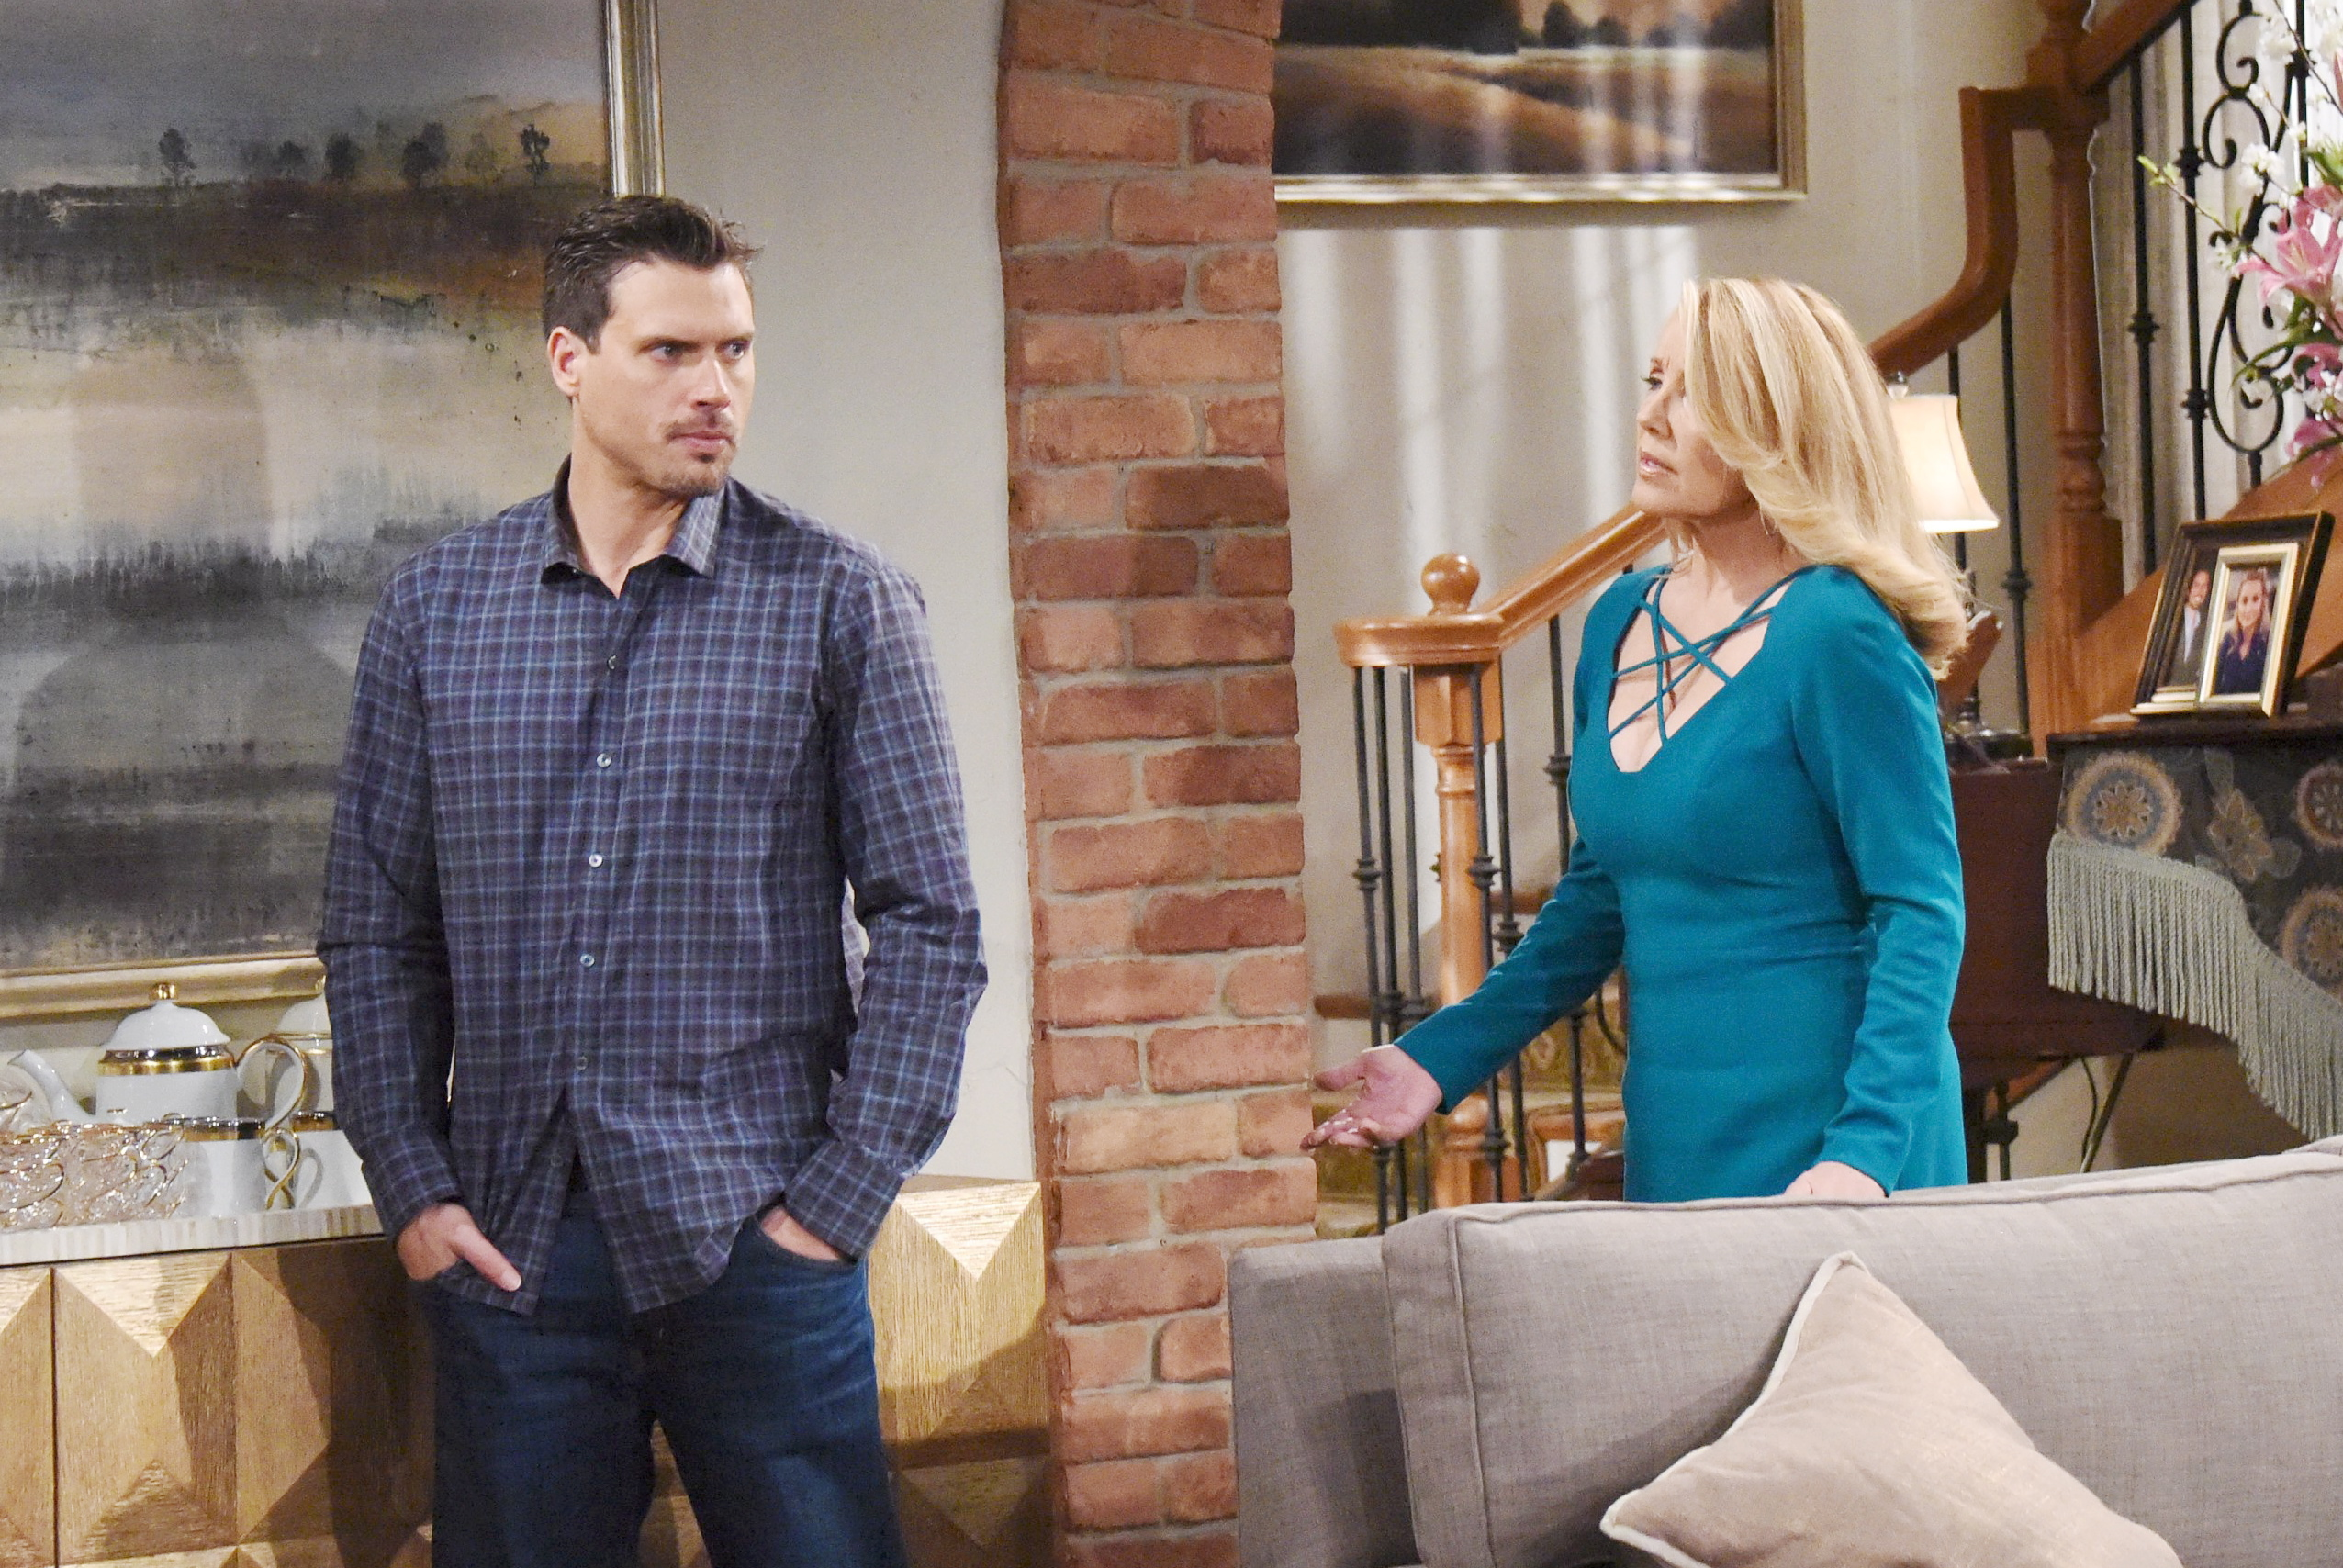 Nikki urges Victor to make amends with Nick. on The Young and the Restless